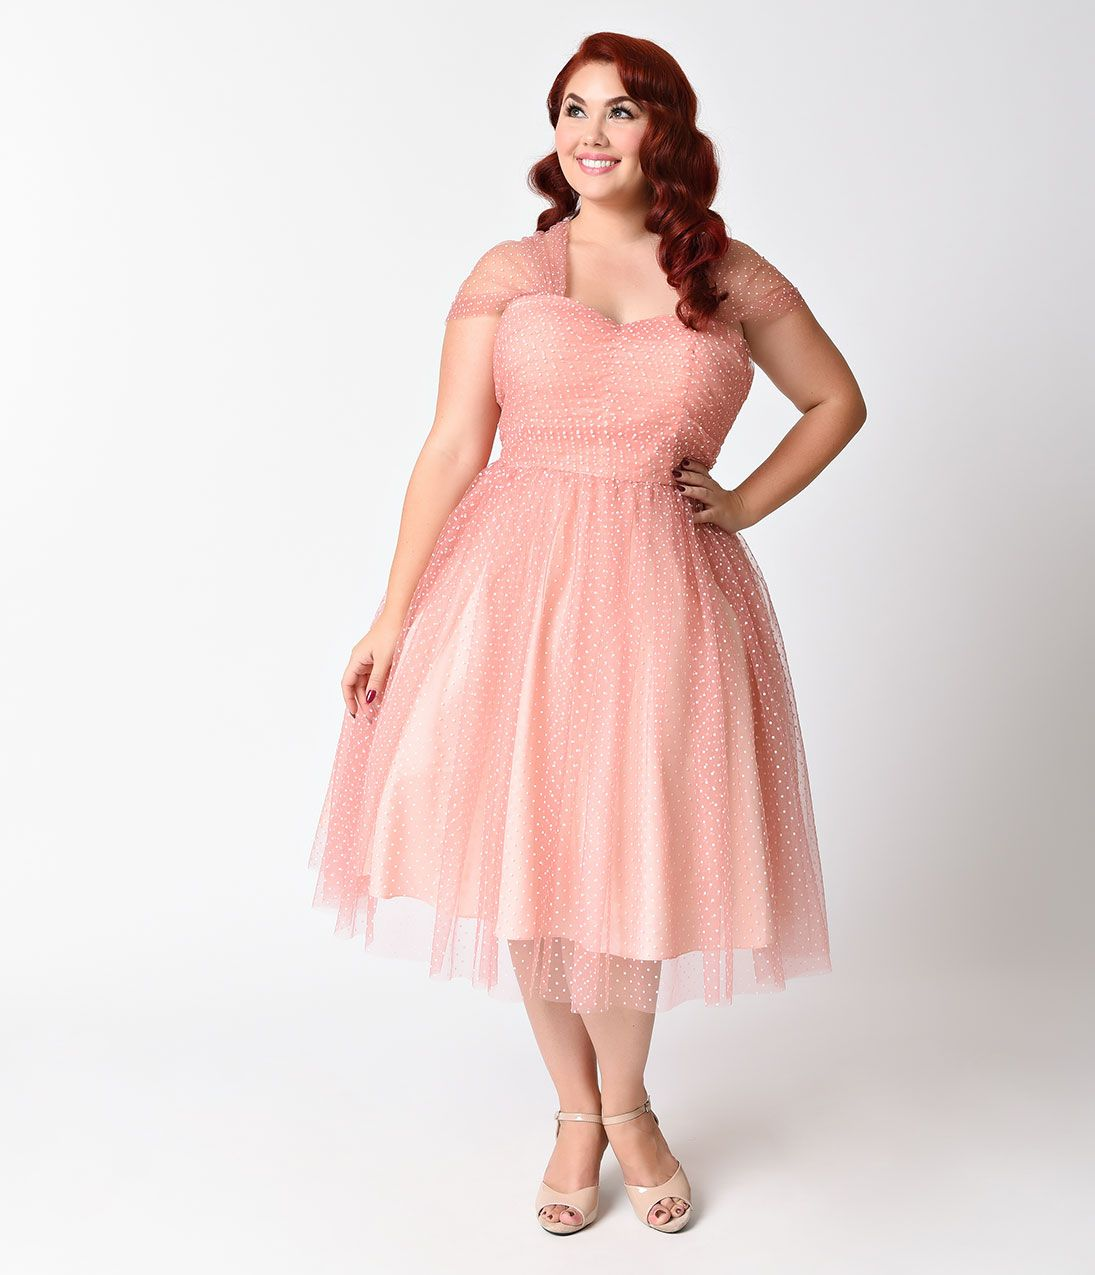 Plus size vintage dresses plus size retro dresses tea length plus size retro 1950s dresses rose pink prom party cocktail tea length dress ombrellifo Gallery